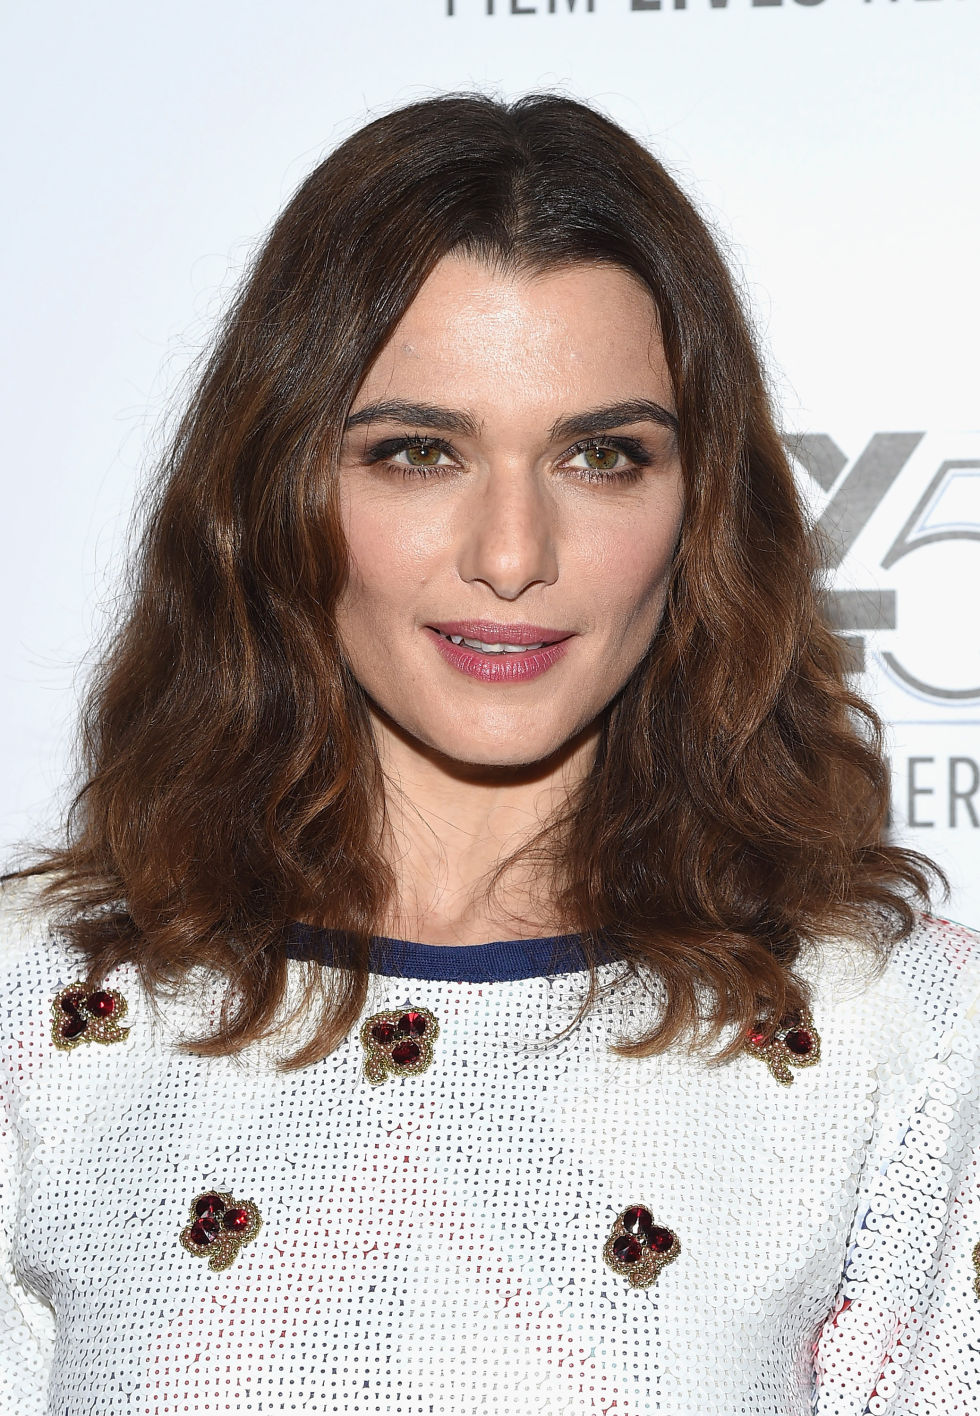 25 mediumlength hairstyles we can't stop staring at  the